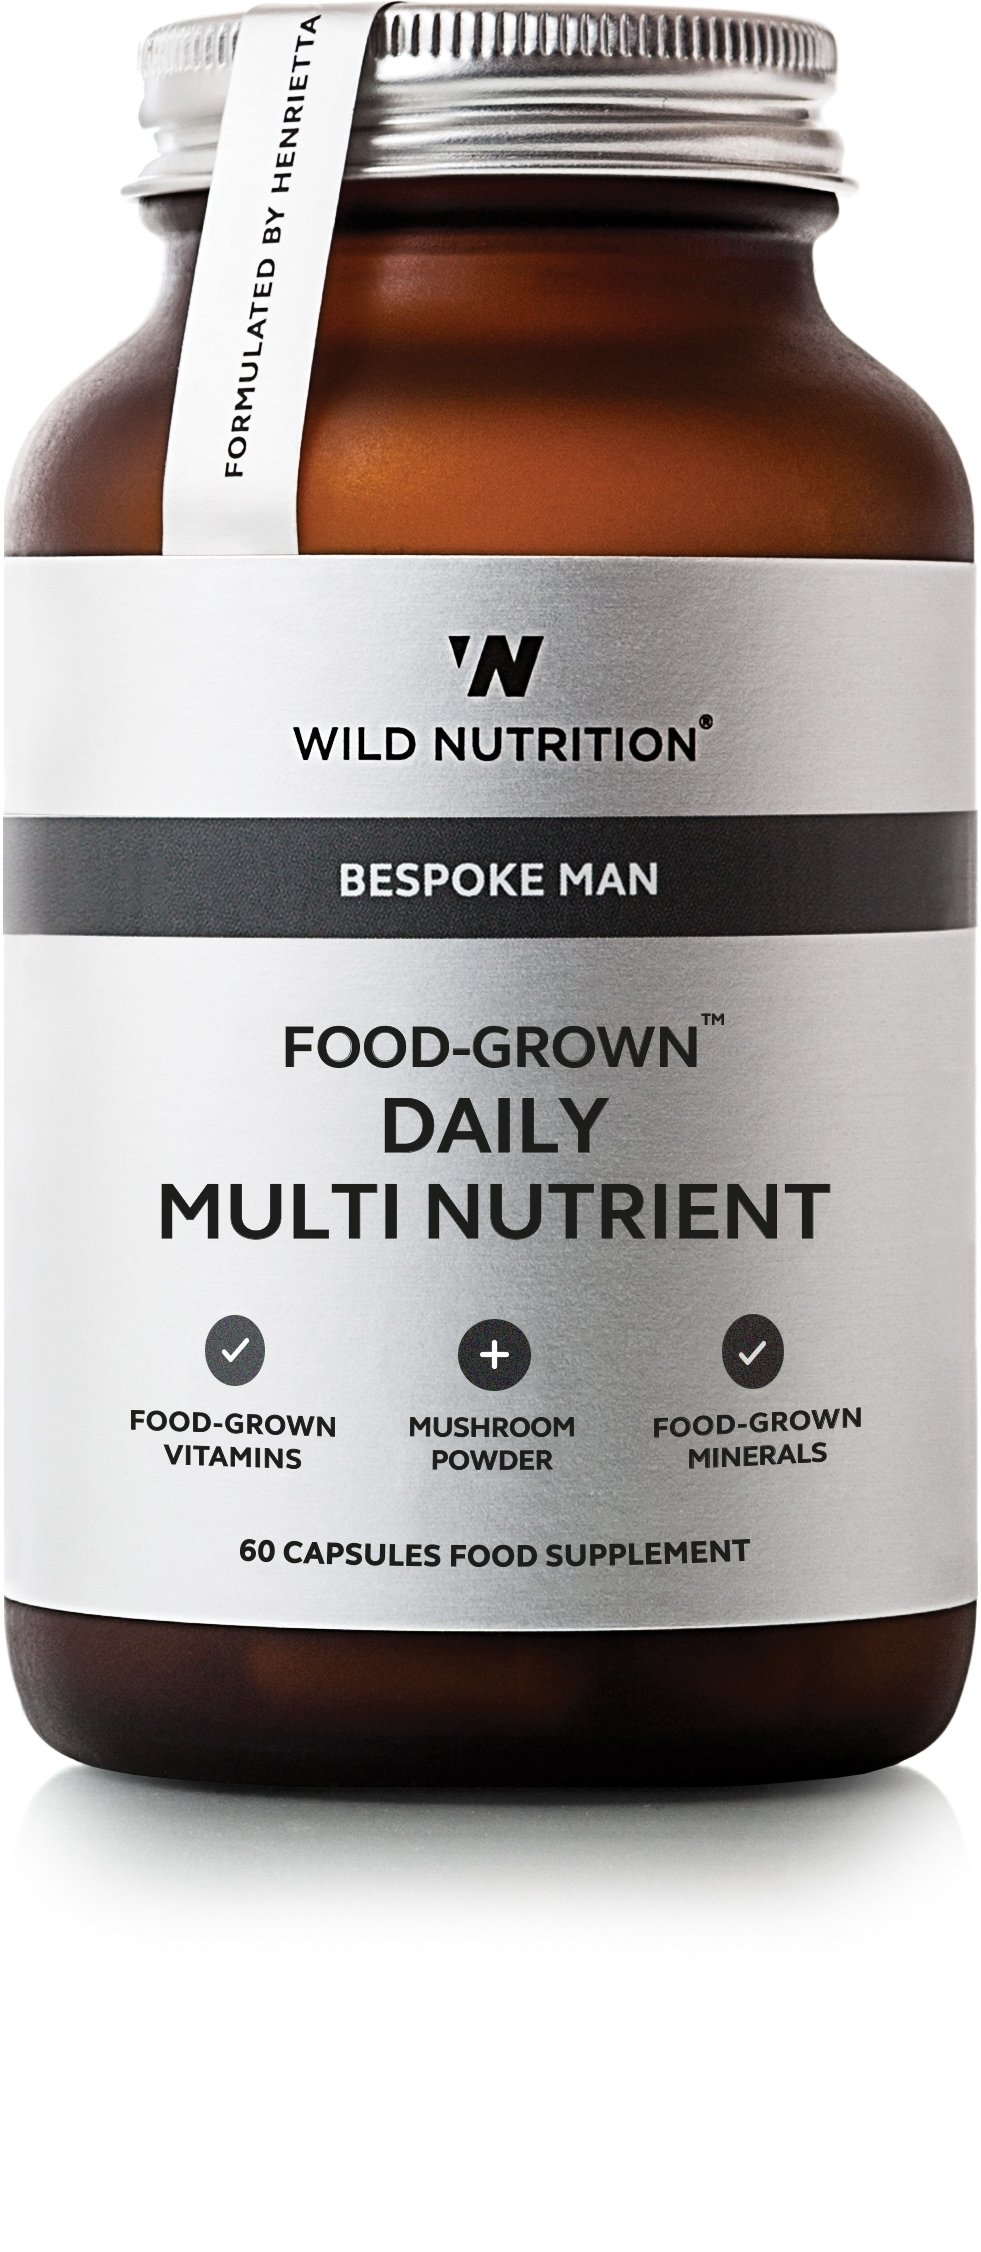 WN Jar Visual BM Daily Multi Nutrient 20151104 134231